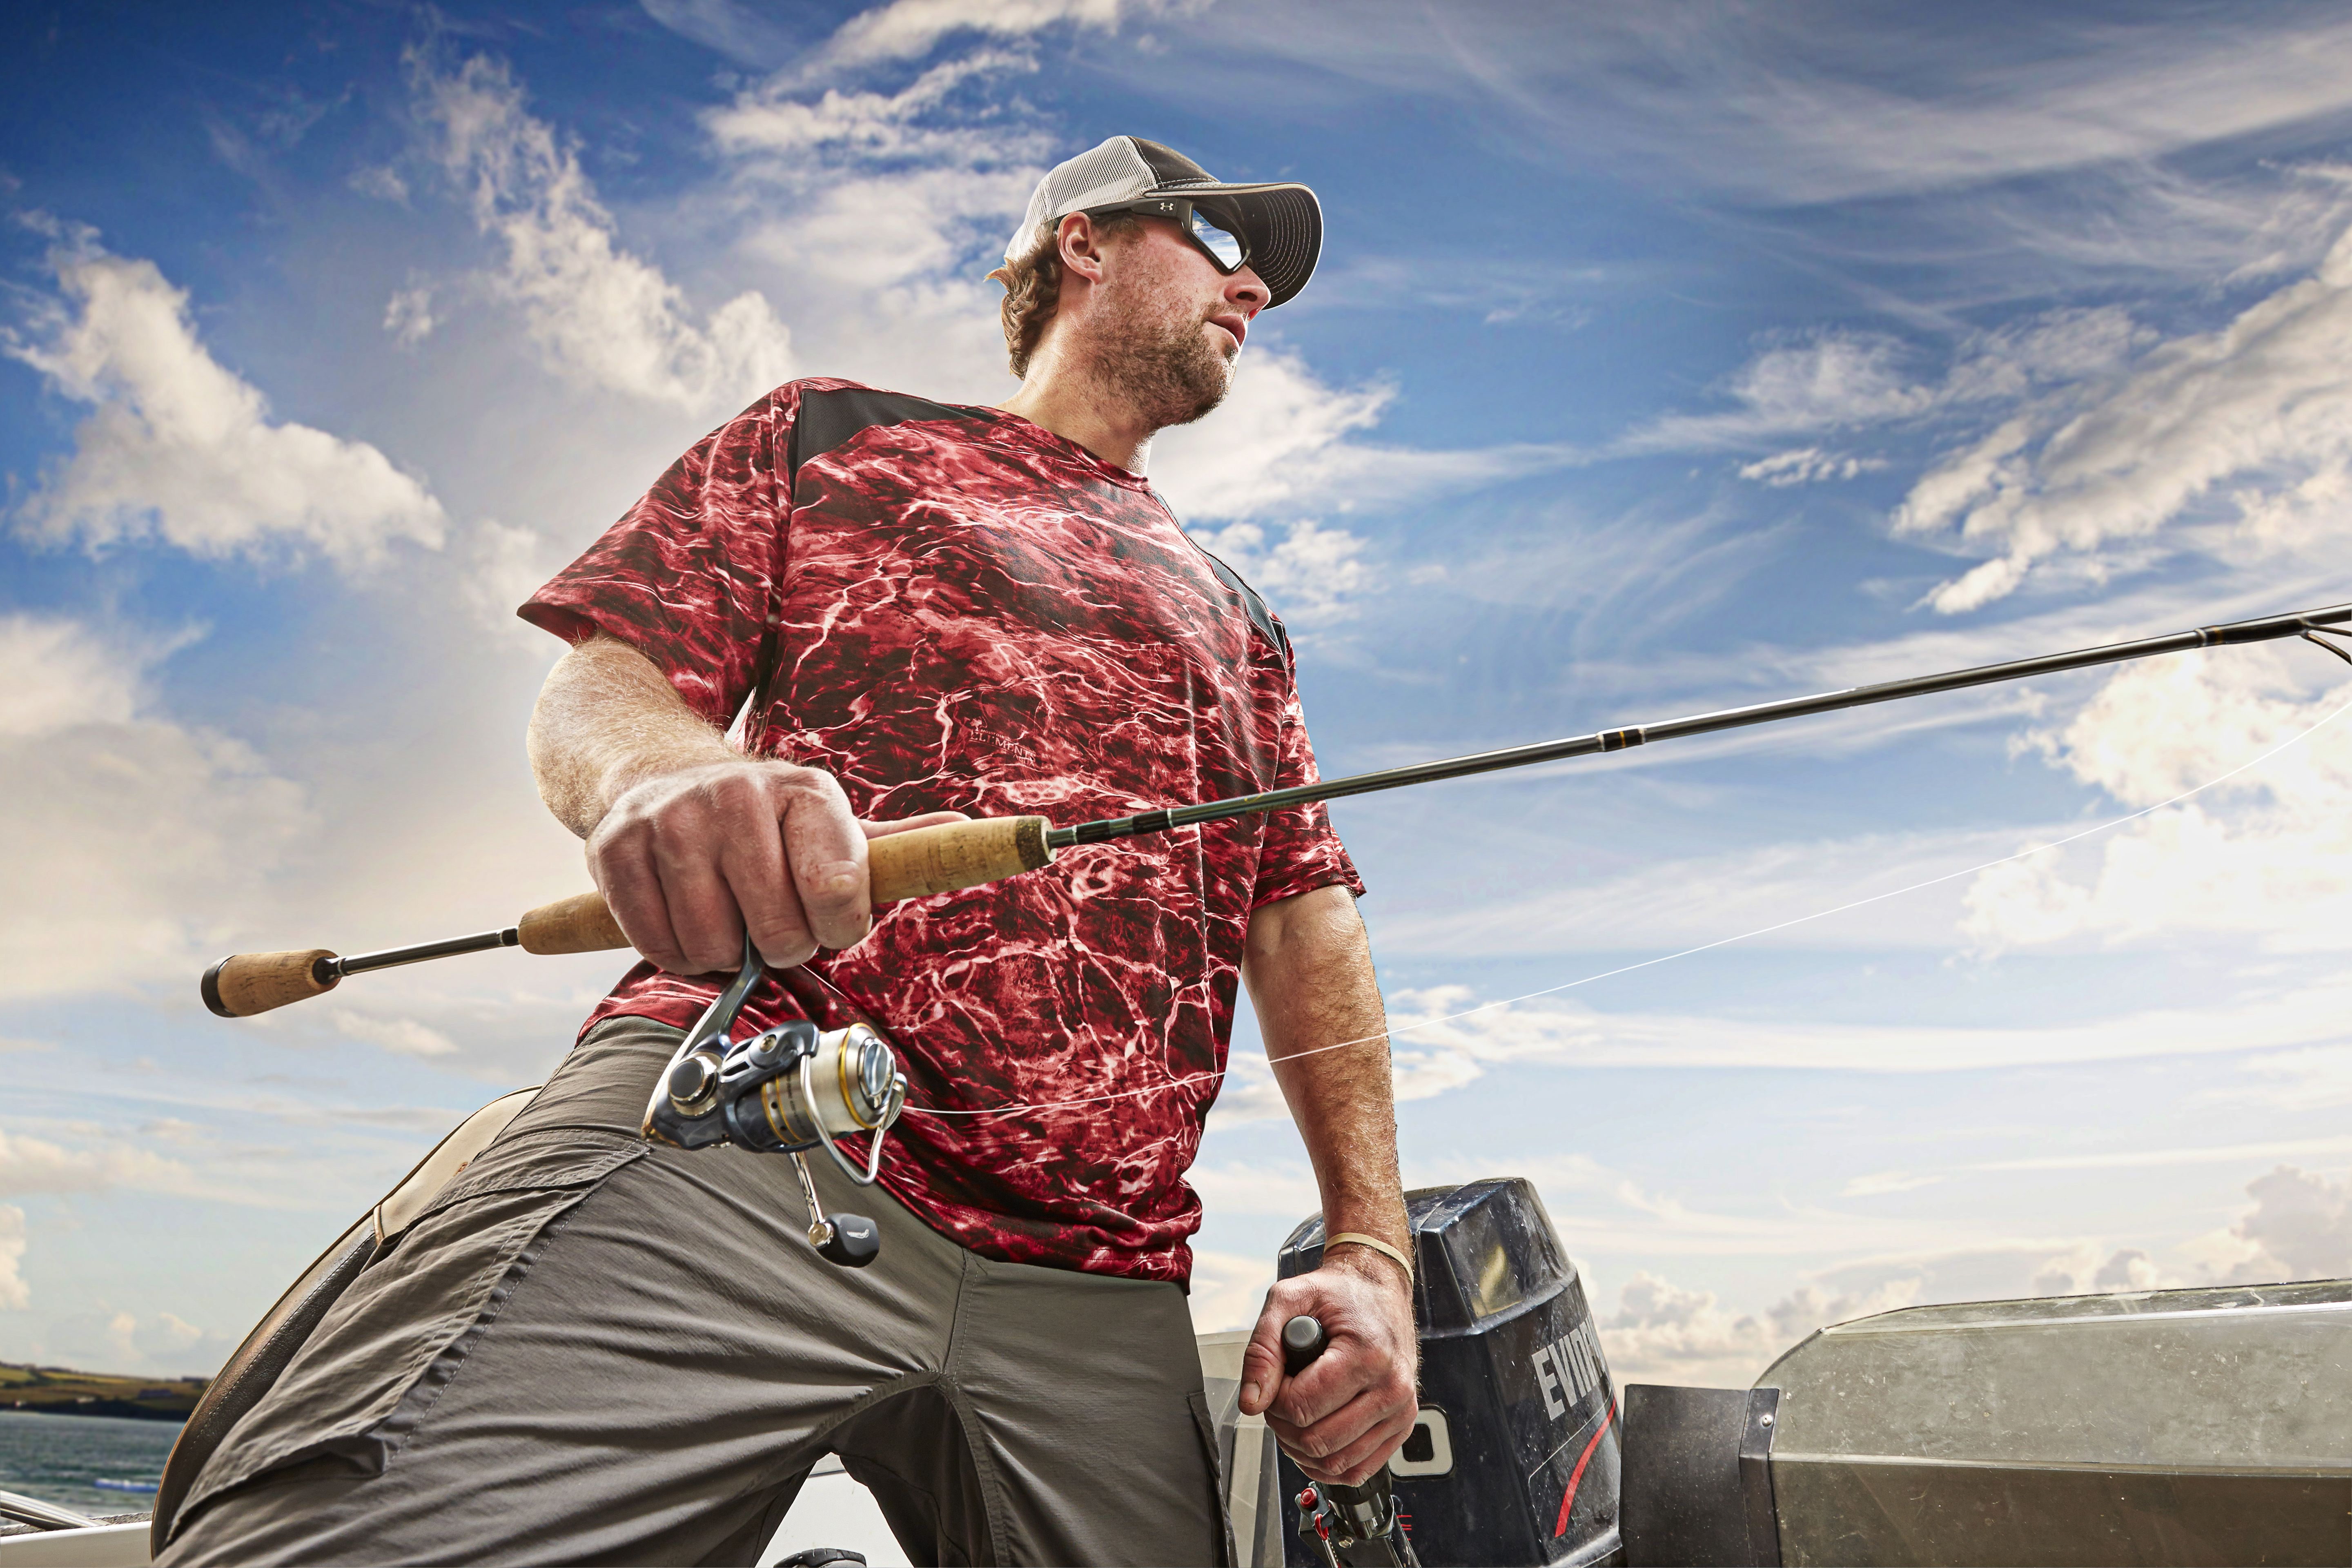 875d4cc480 Performance Short Sleeve Fishing Shirt with Mossy Oak elements is designed  to keep you protected from the bugs and the sun so you can stay out on the  water ...